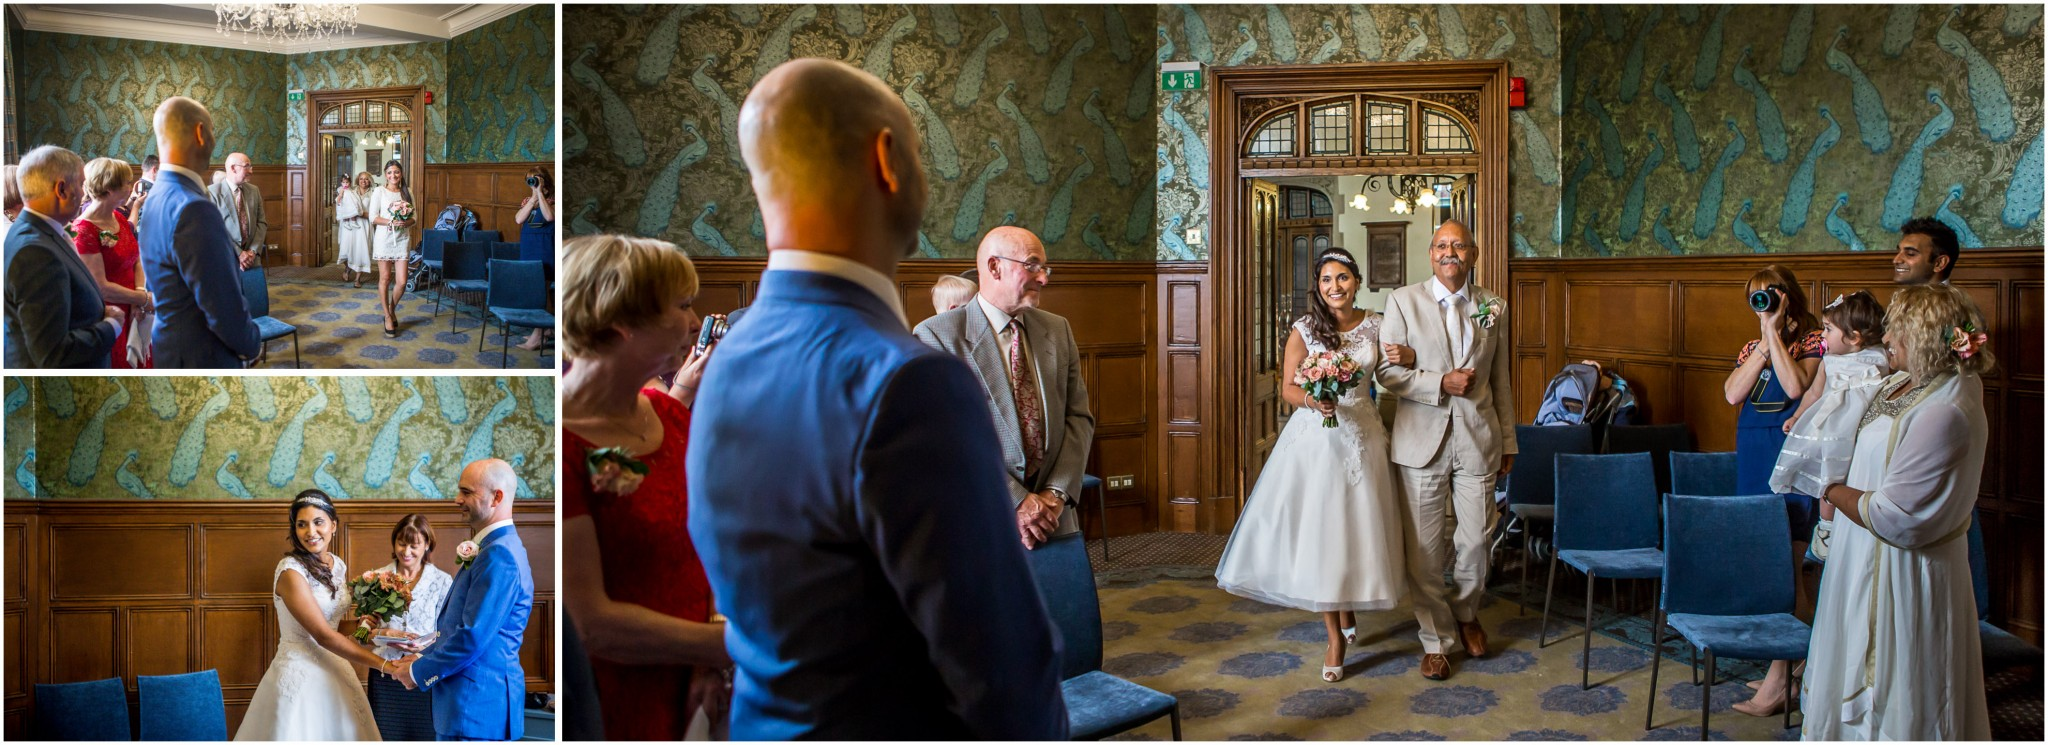 winchester-basing-room-wedding-photography-013